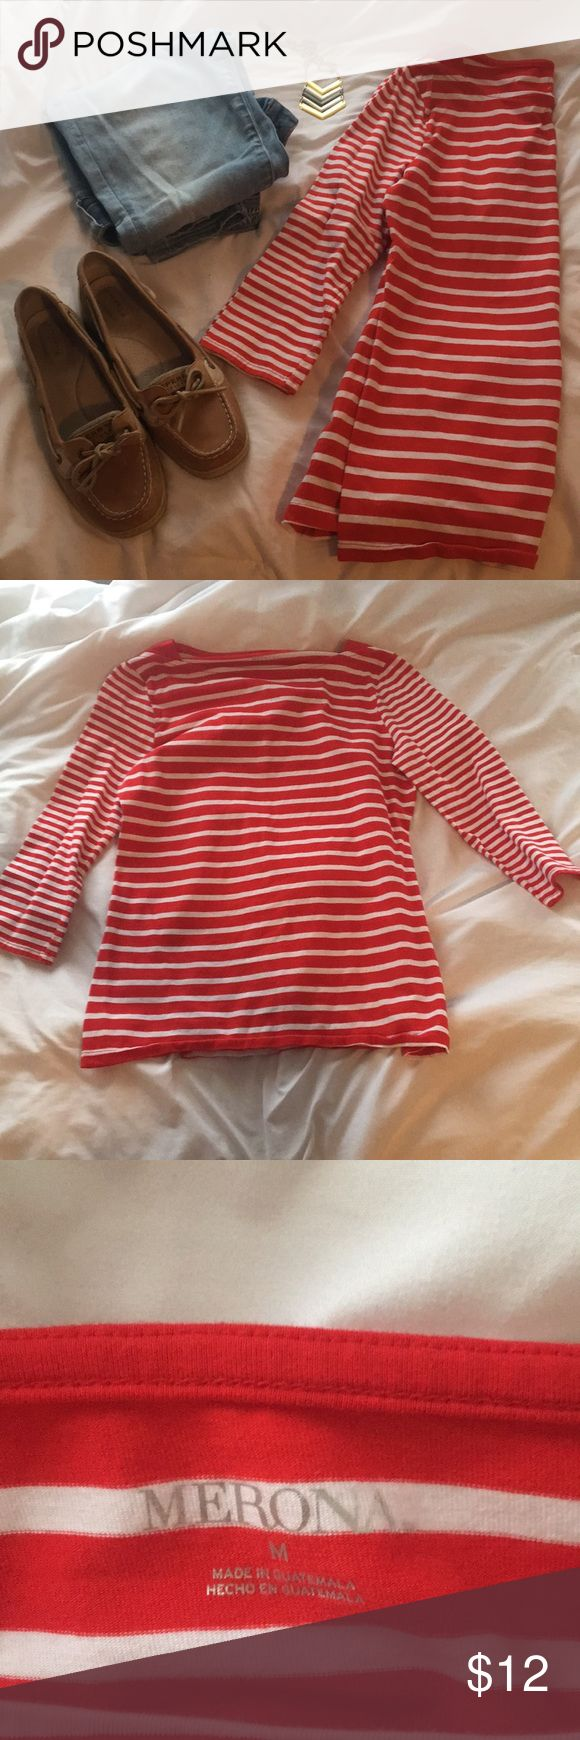 Red-and-White Striped Merona Shirt Medium red-and-white shirt made of 95% cotton and 5% spandex Merona Tops